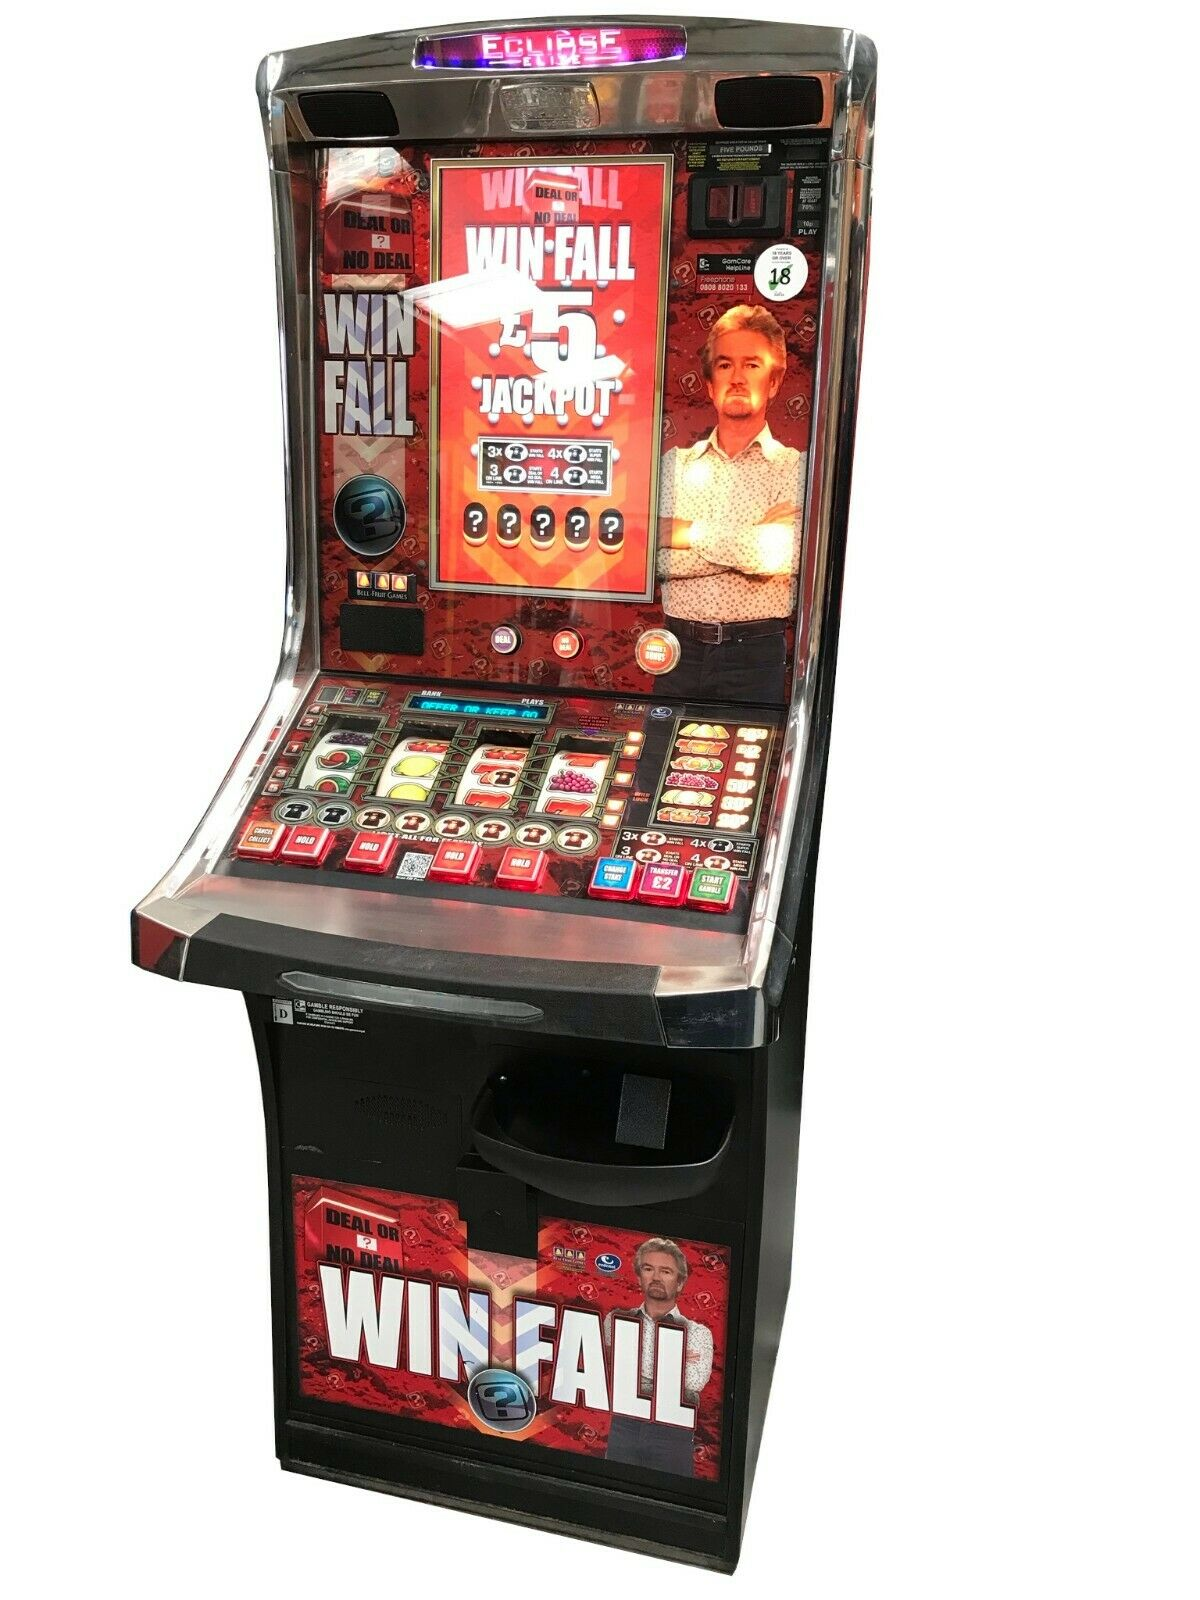 Deal or No Deal Win Fall Fruit Machine - Ready to Play - Games Room Man Cave